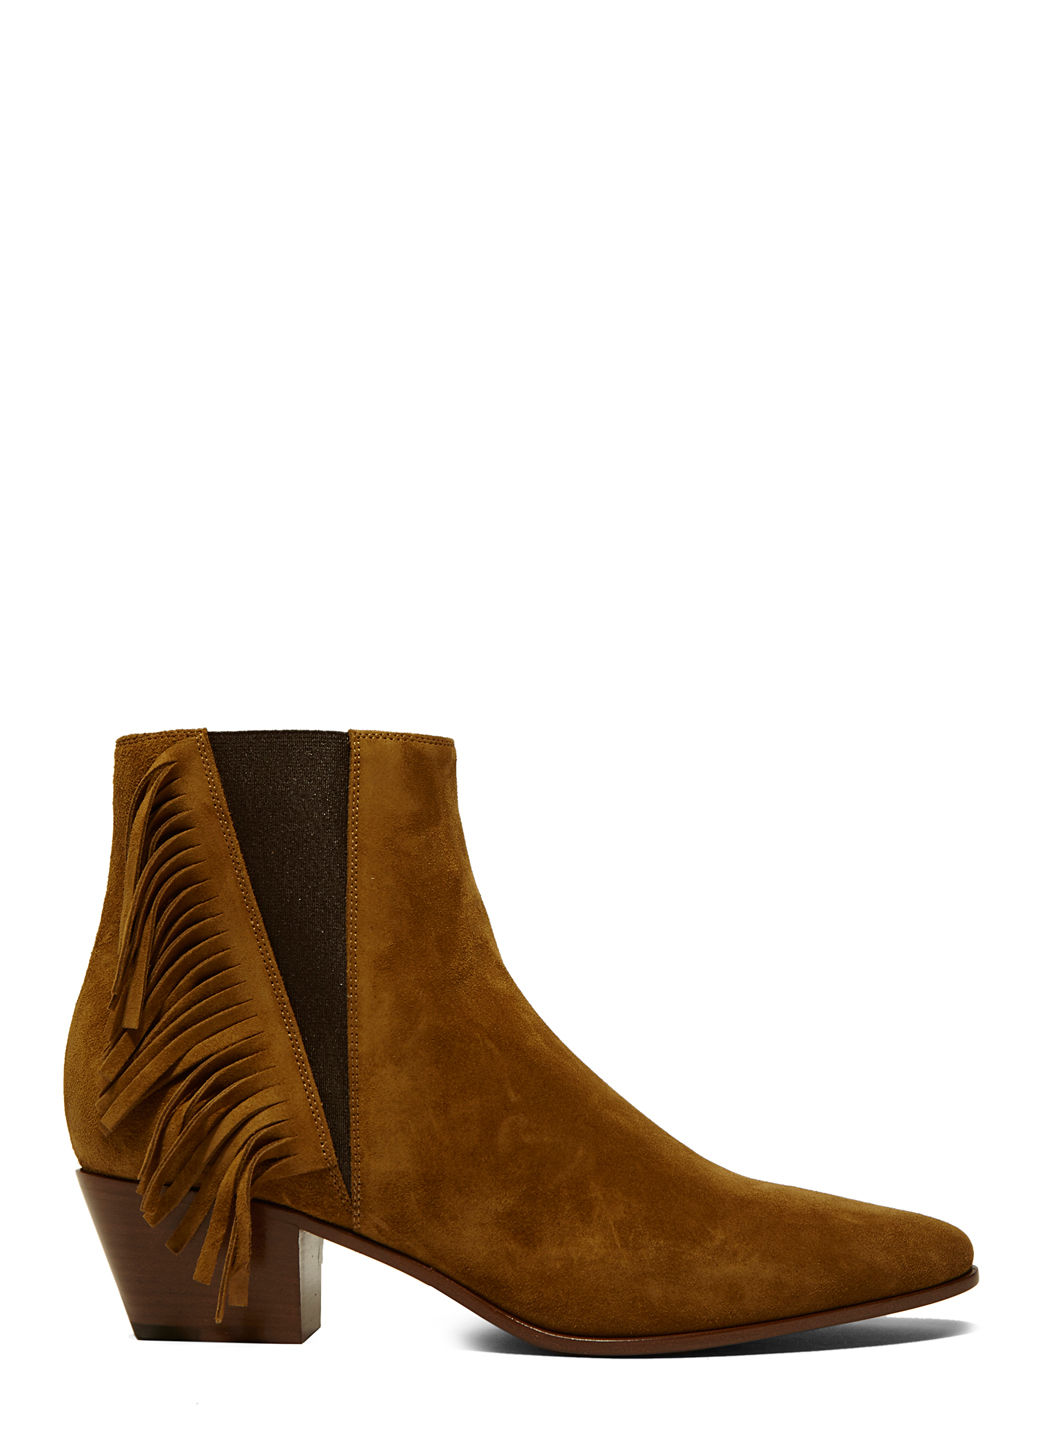 Women's Tasselled Chelsea Boots in Brown